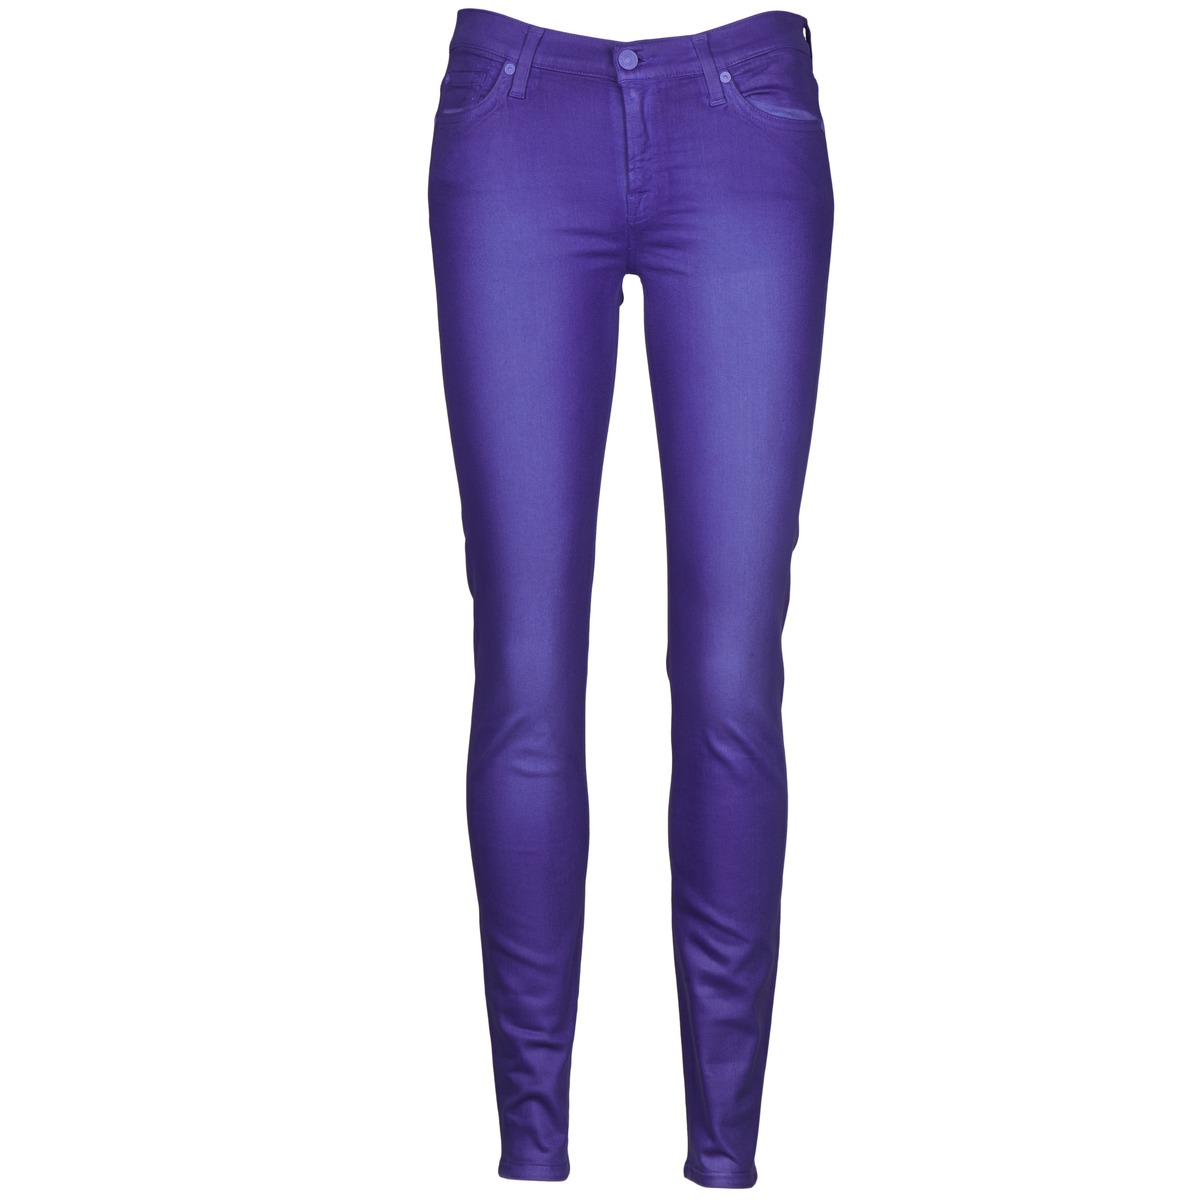 7 for all Mankind THE SKINNY VINE LEAF Blue